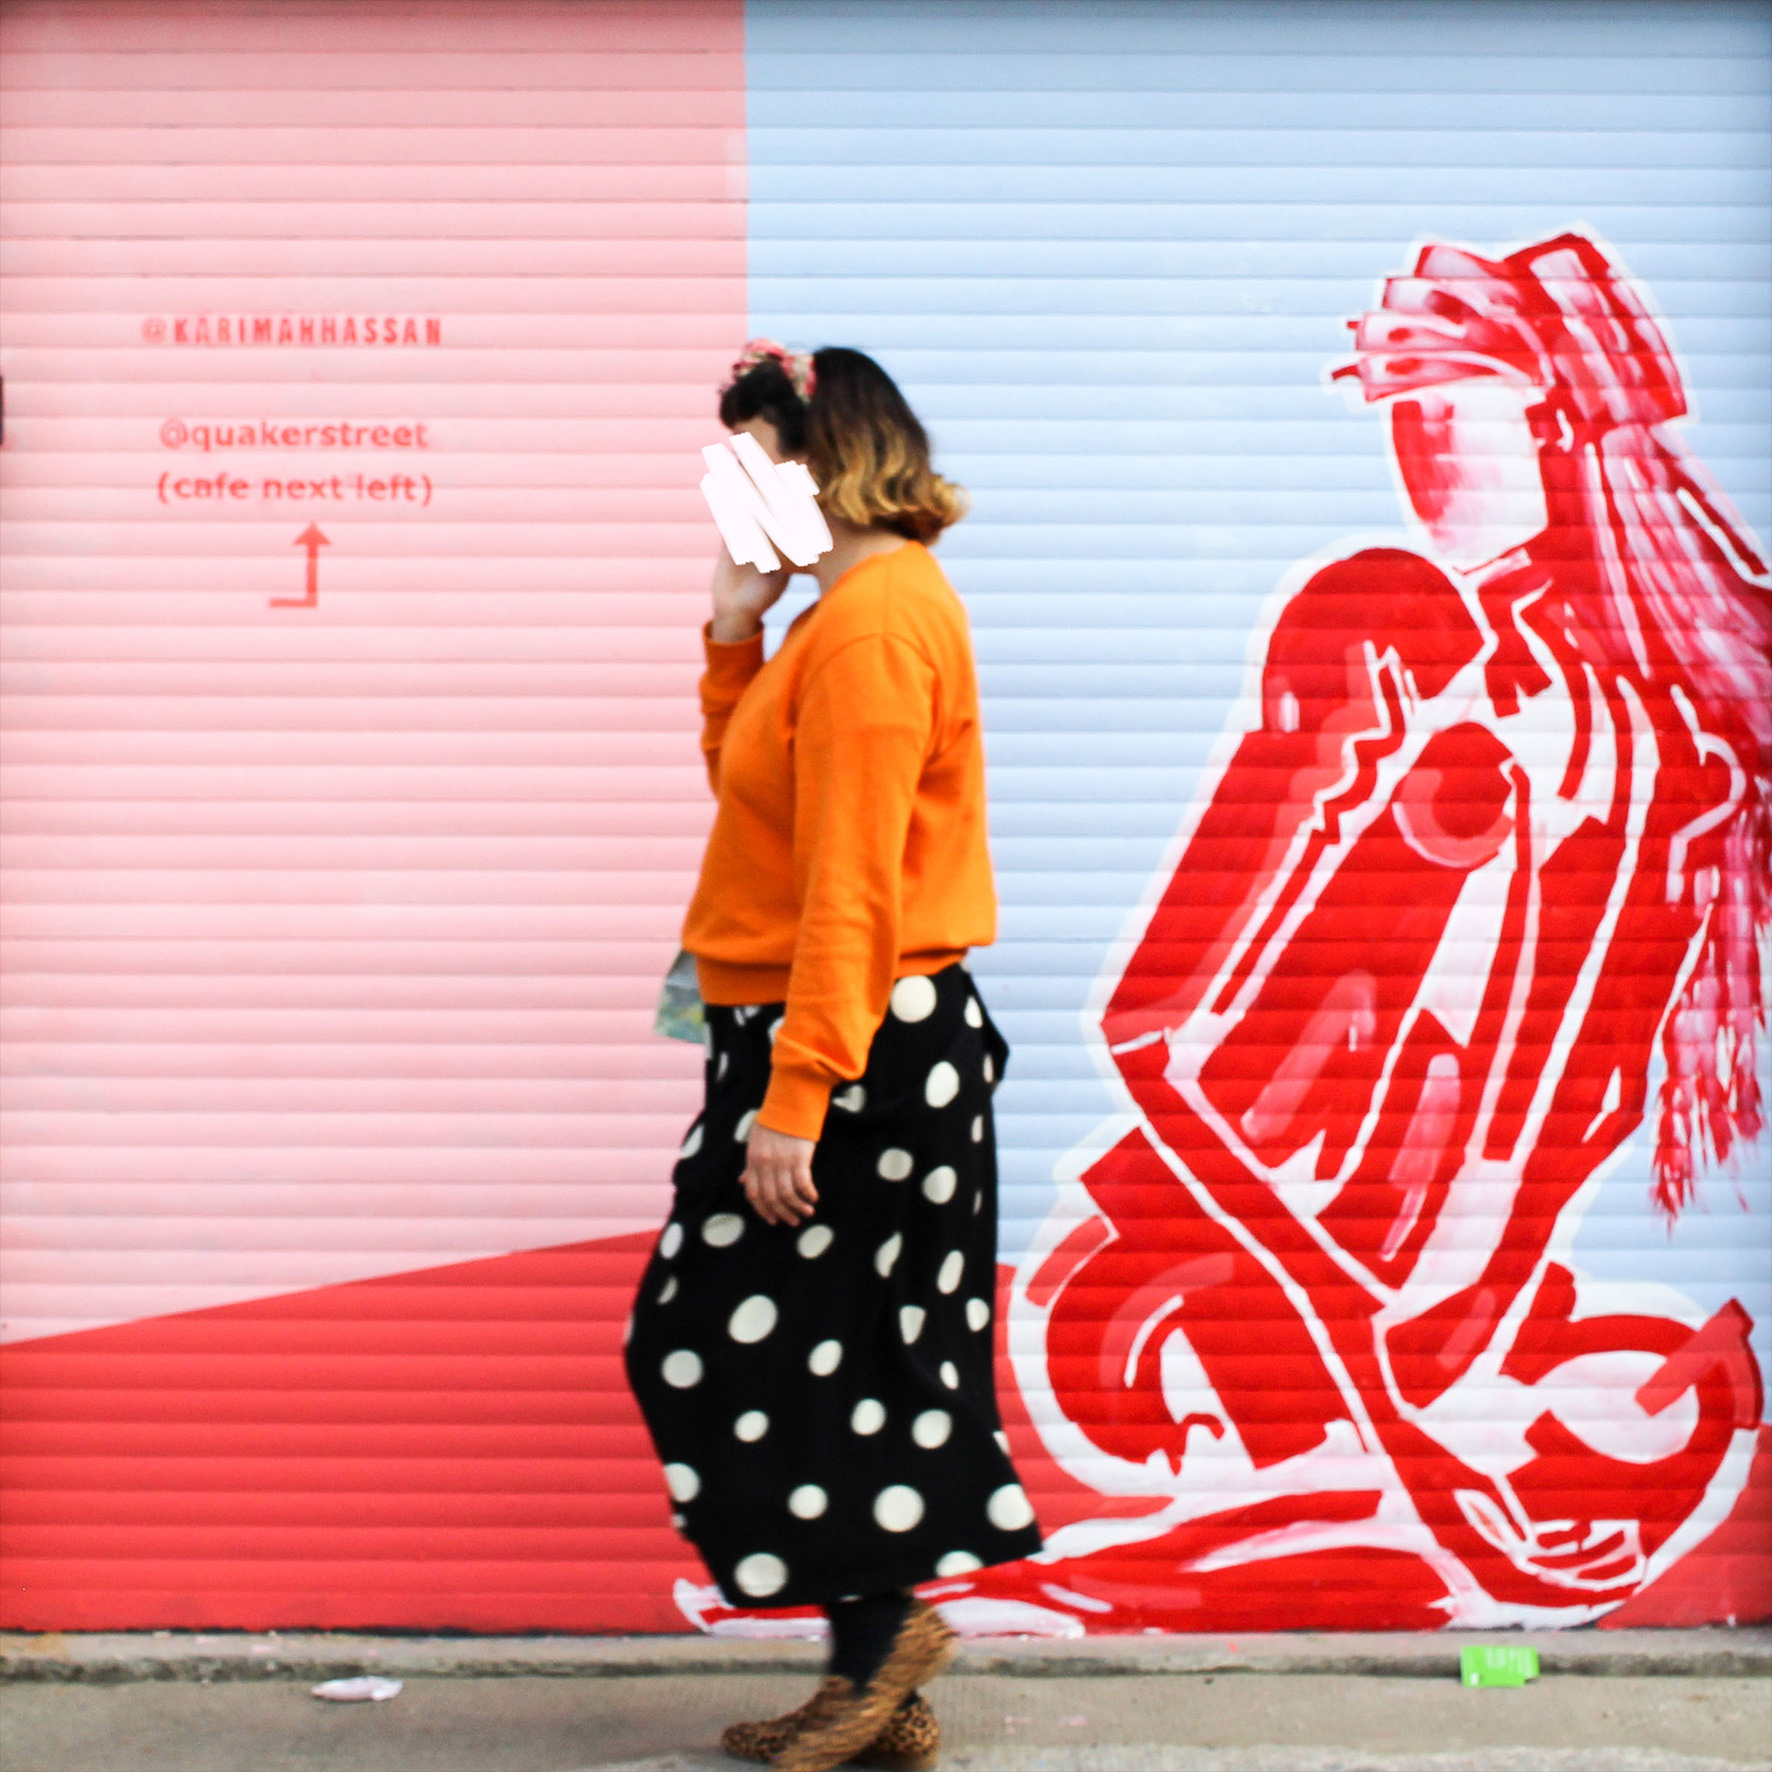 Karimah Hassan, Commissioned mural by Quaker Street cafe, Shoreditch